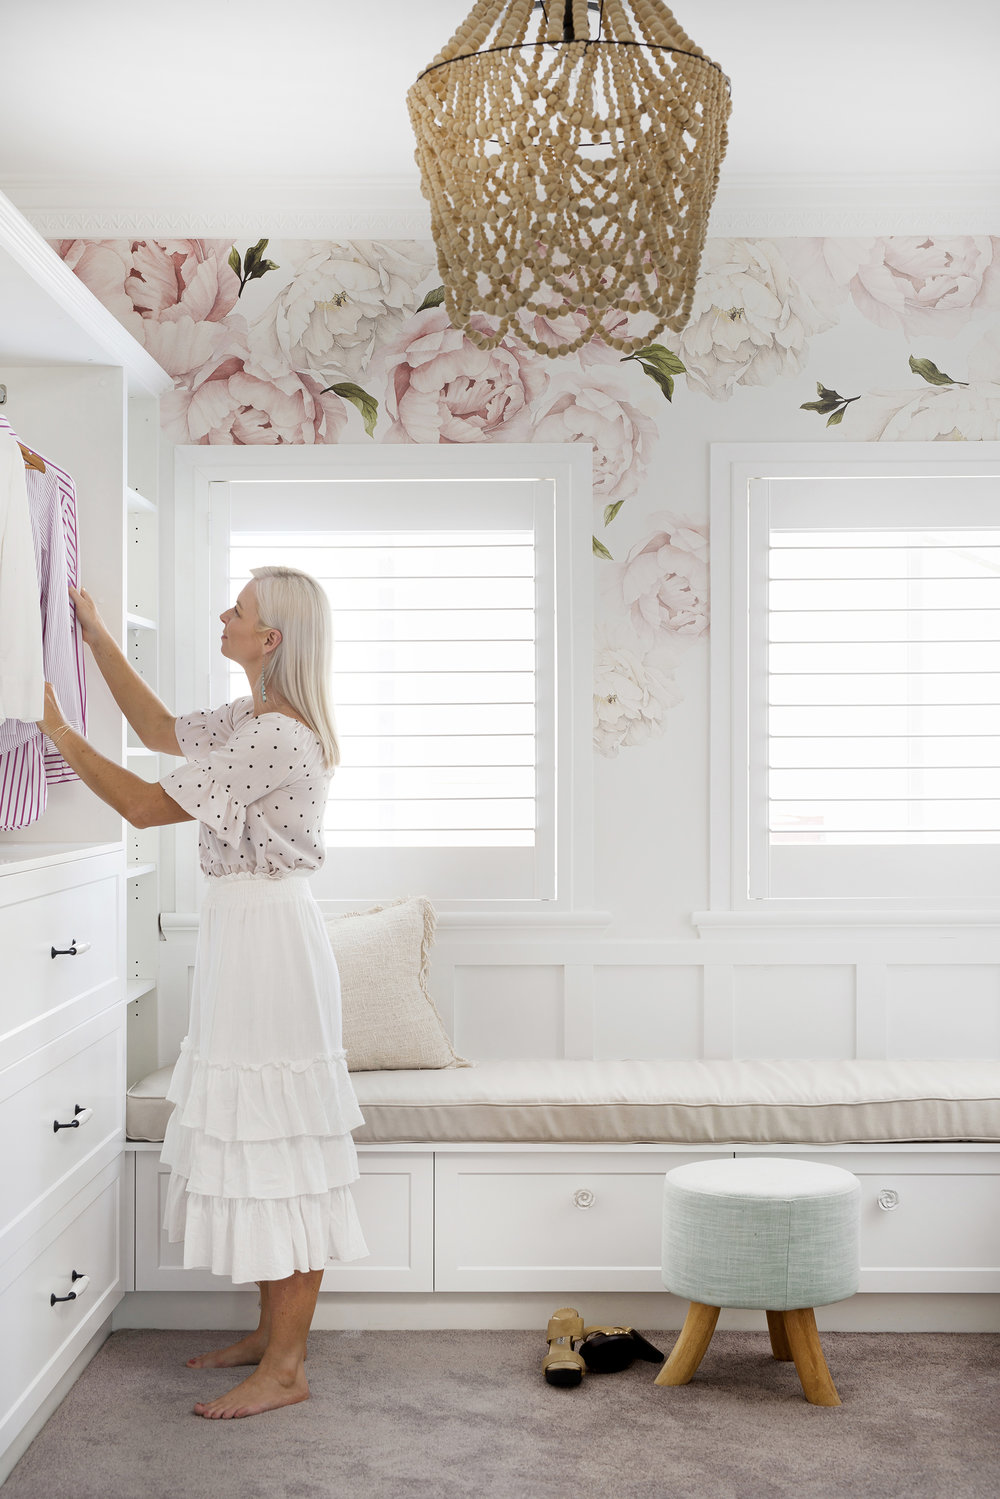 Peony Flower Wall Stickers  /   Photography    Mindi Cooke  /   Photoshoot   styling  Kylie Jackes    Build + design    Front Porch Properties  /   Interior styling  Soul Styling Interiors